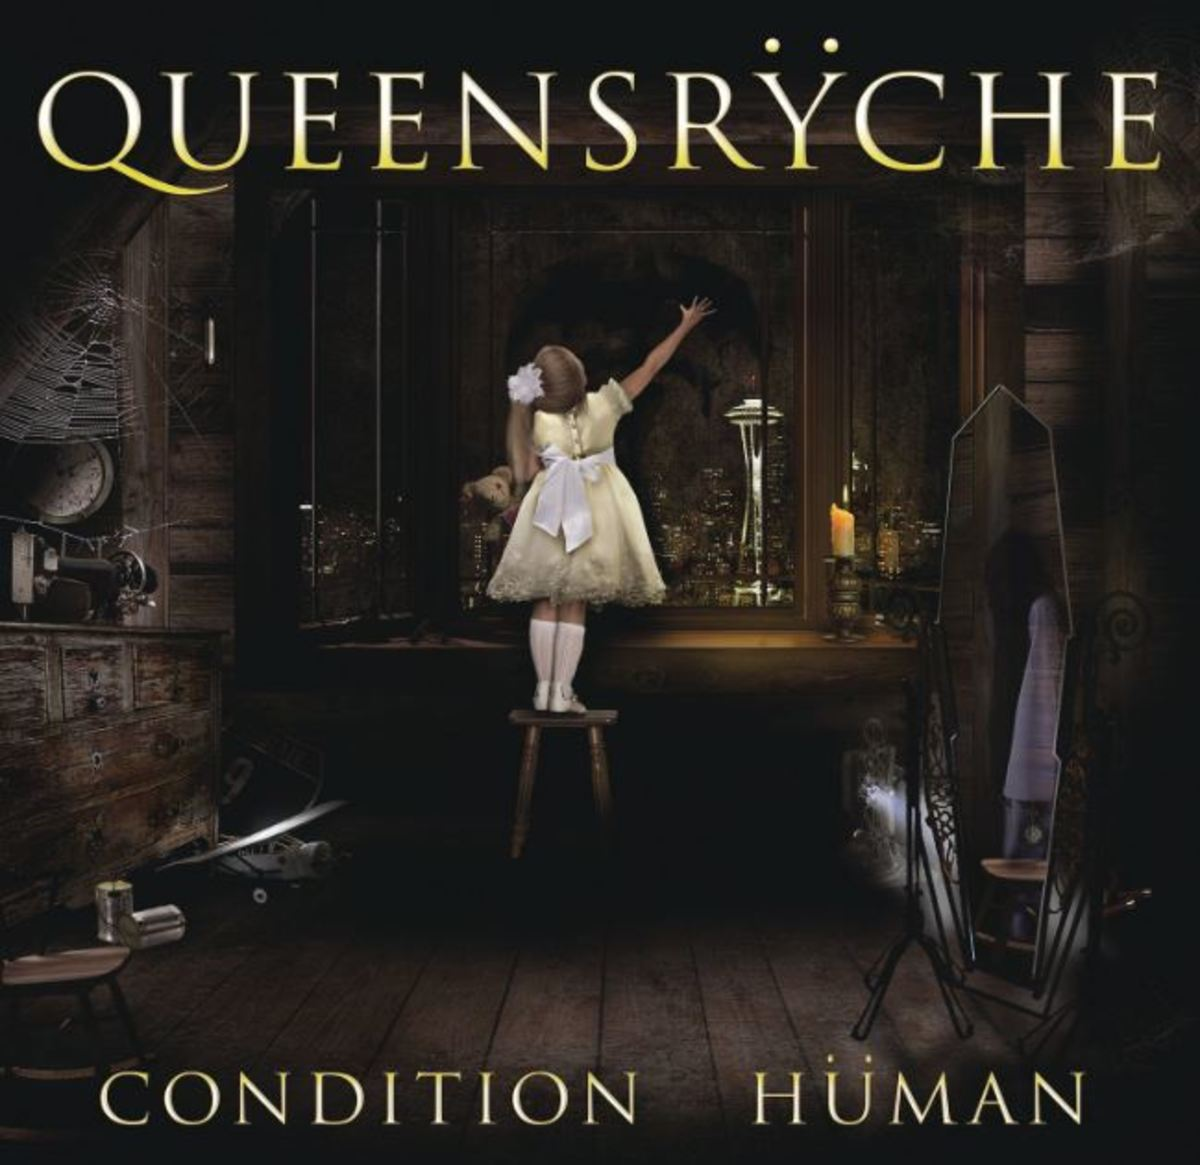 queensryche-condition-human-2015-album-review